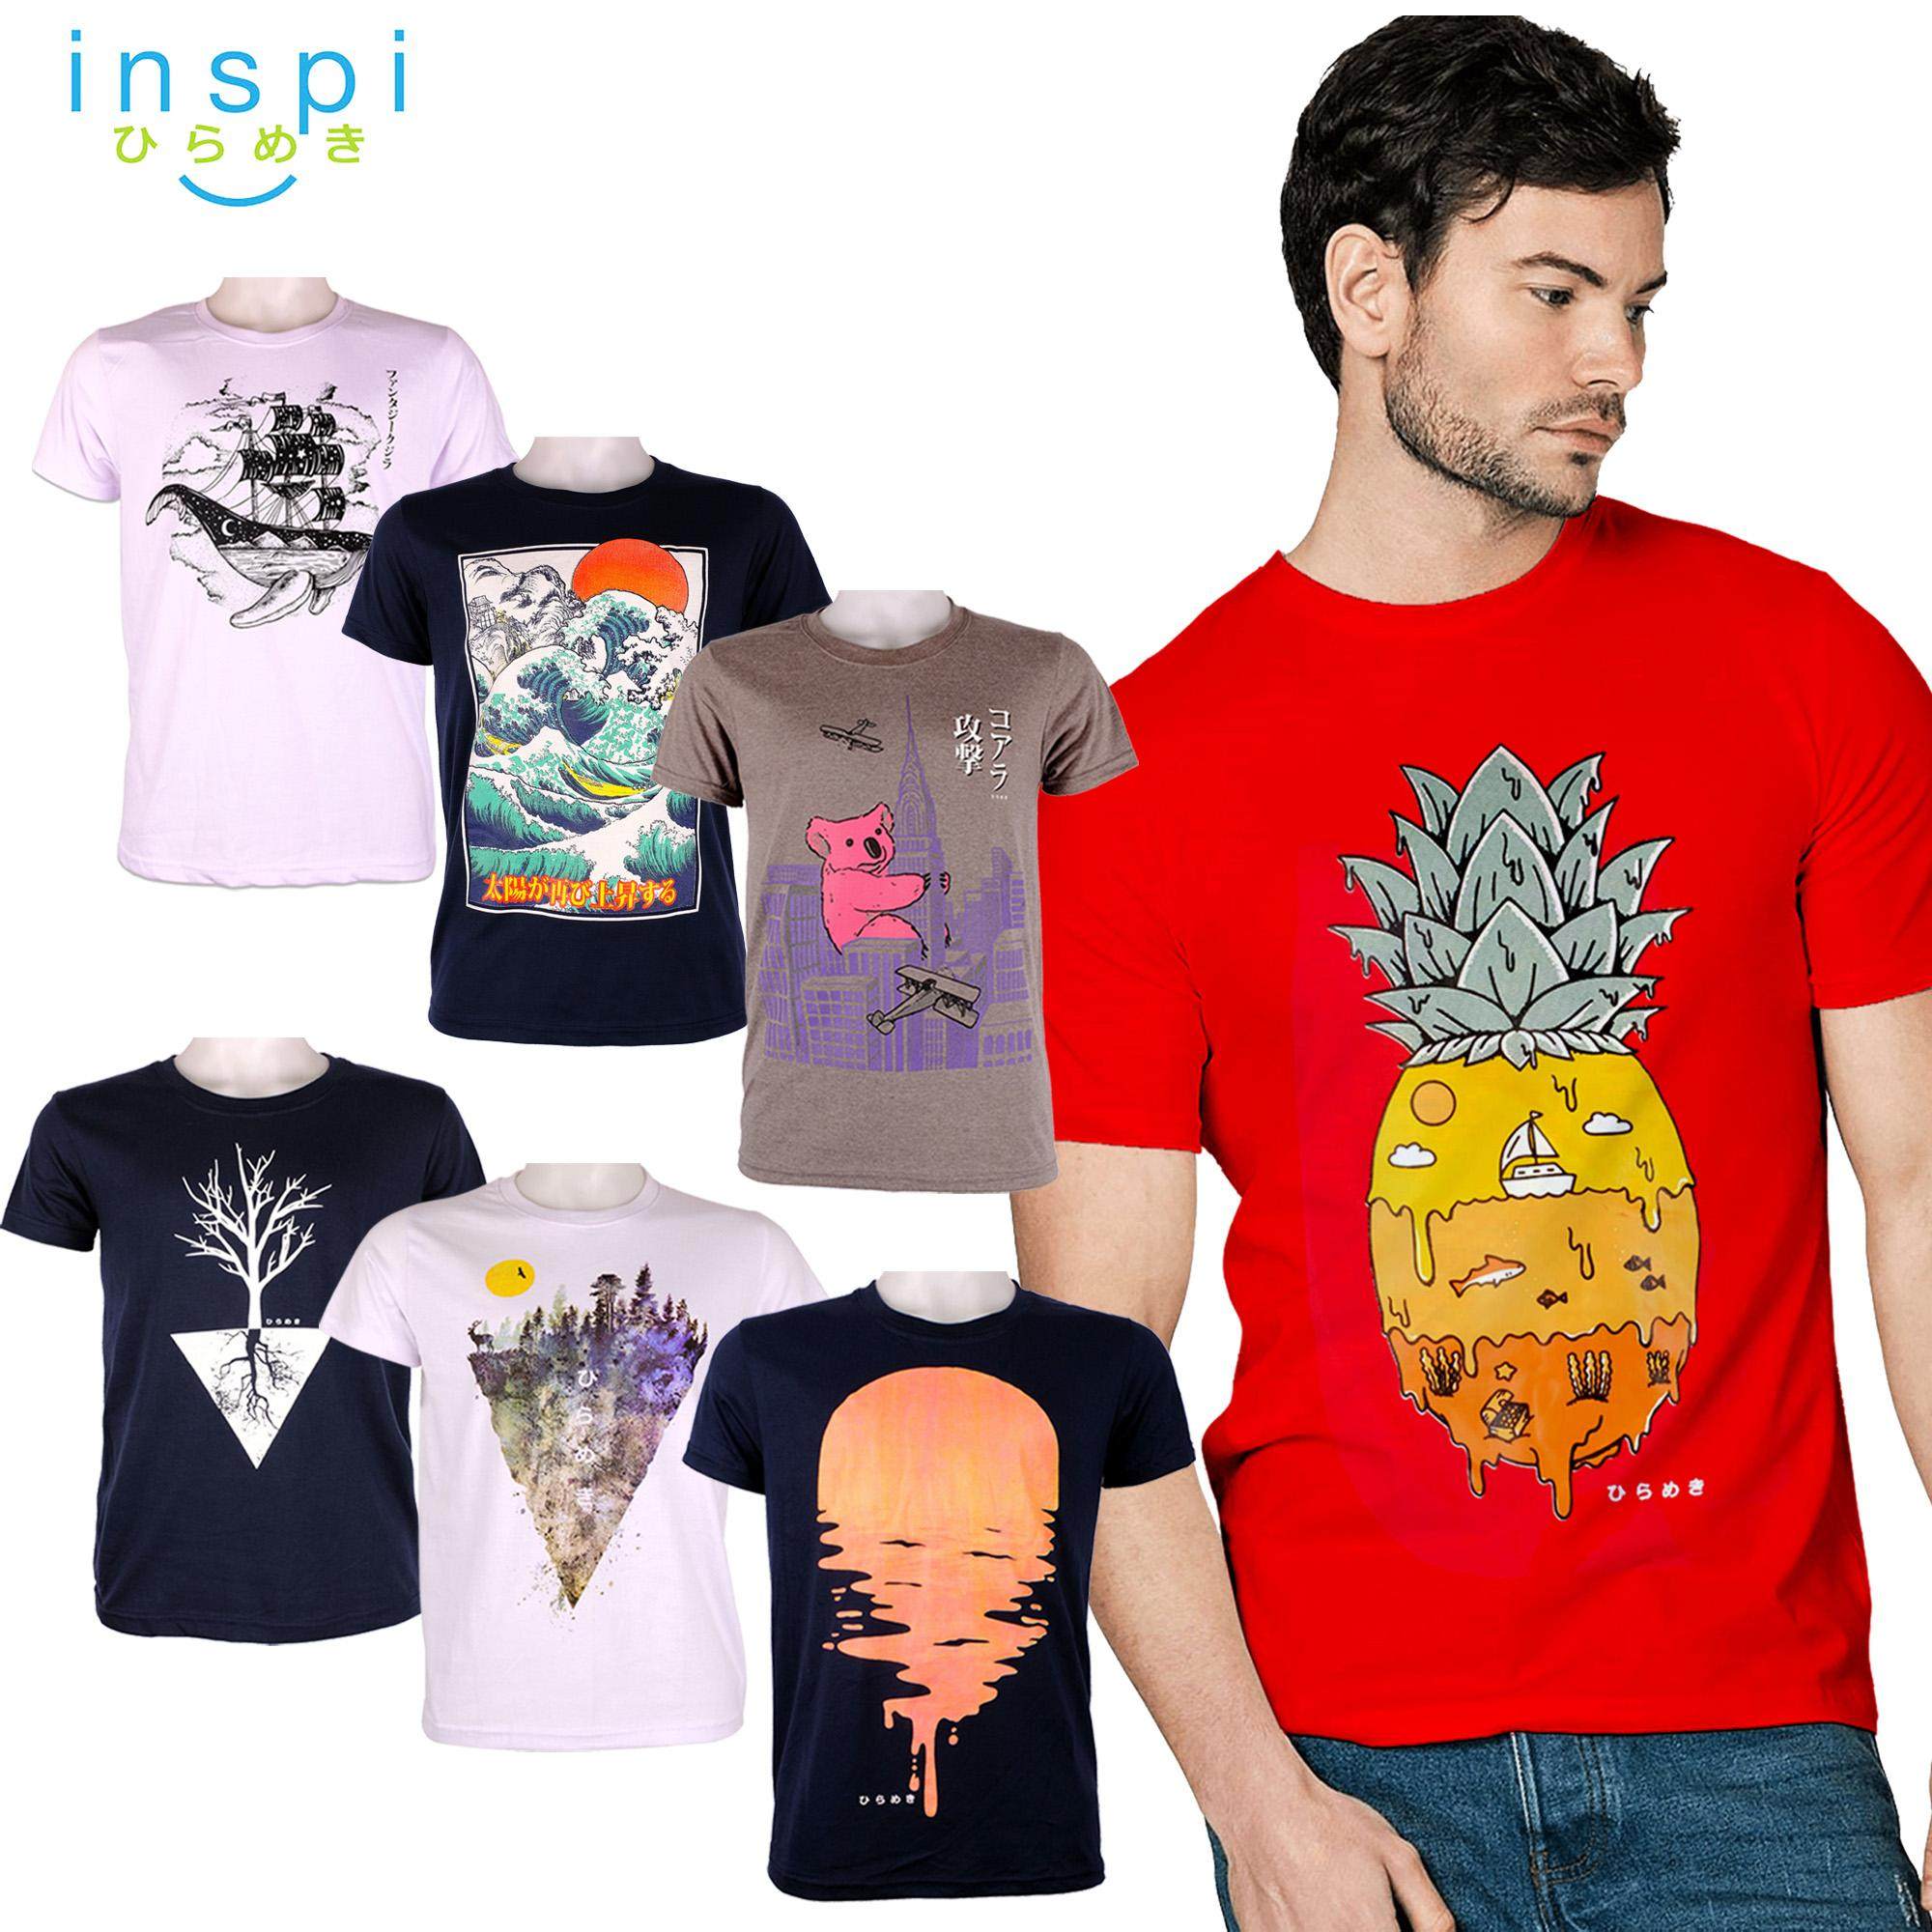 23f6db8af79 INSPI Tees Nature Collection tshirt printed graphic tee Mens t shirt shirts  for men tshirts sale